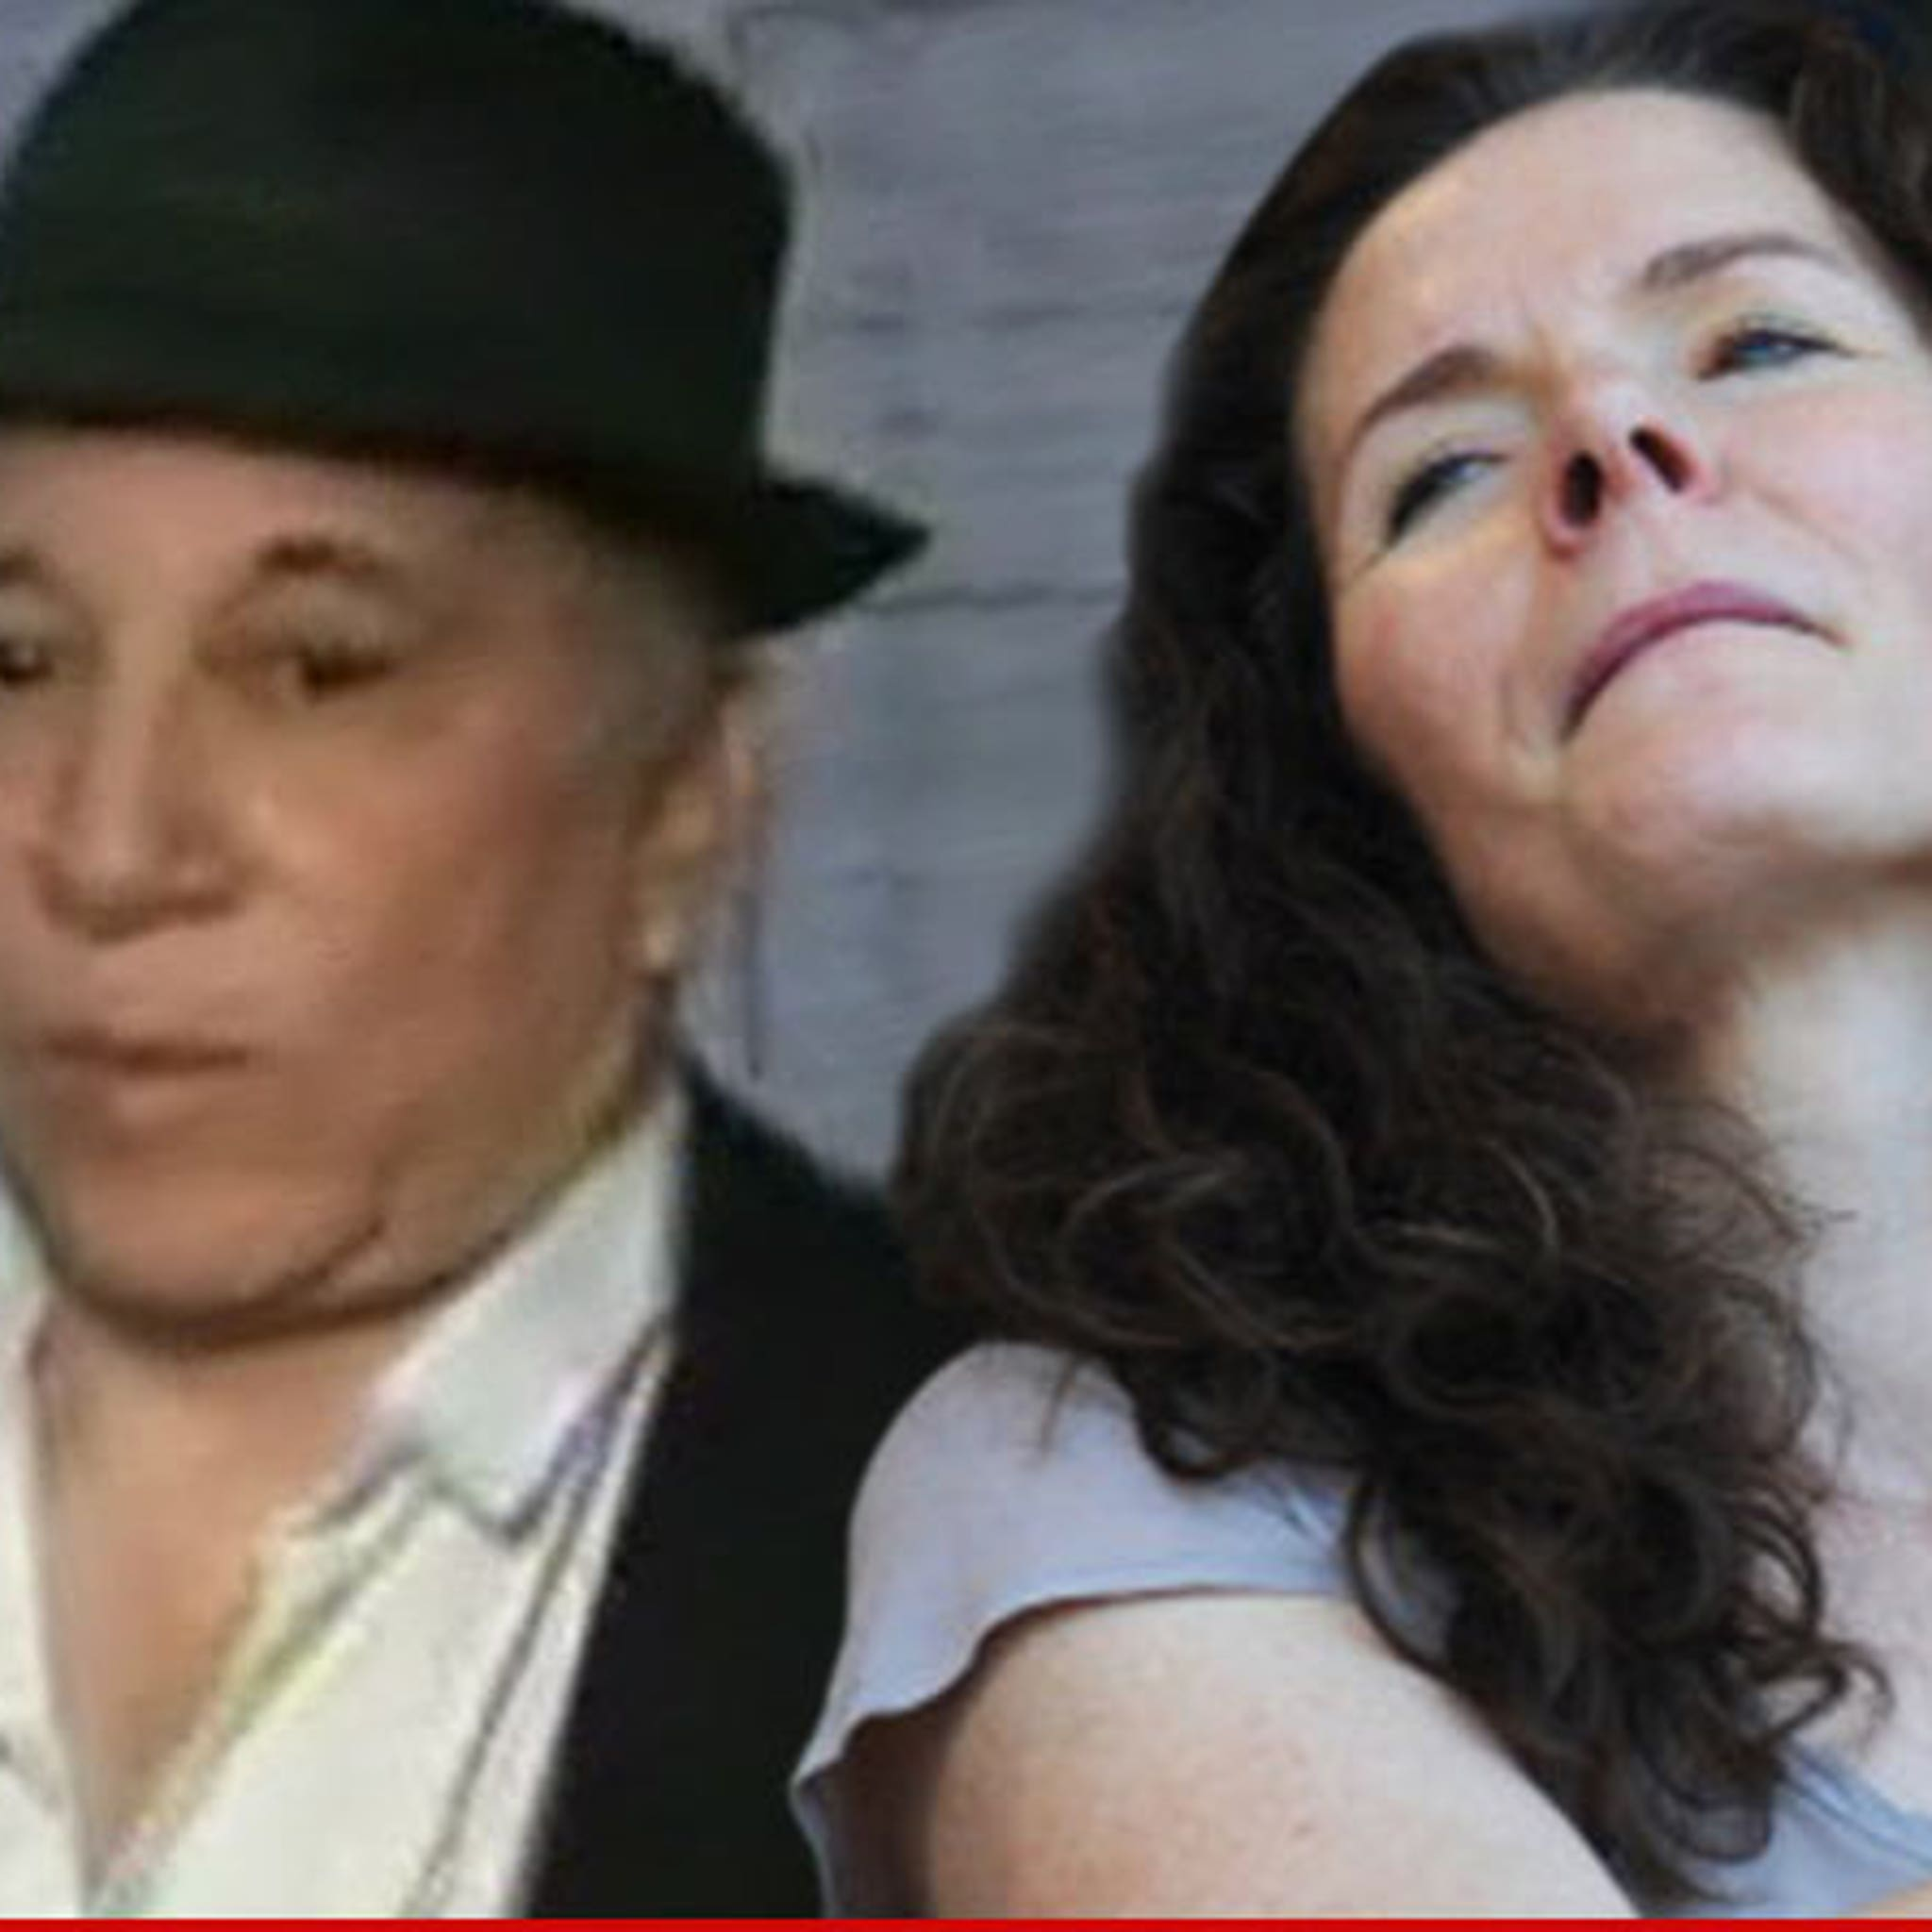 Paul Simon & Edie Brickell -- Police Say She Smelled of